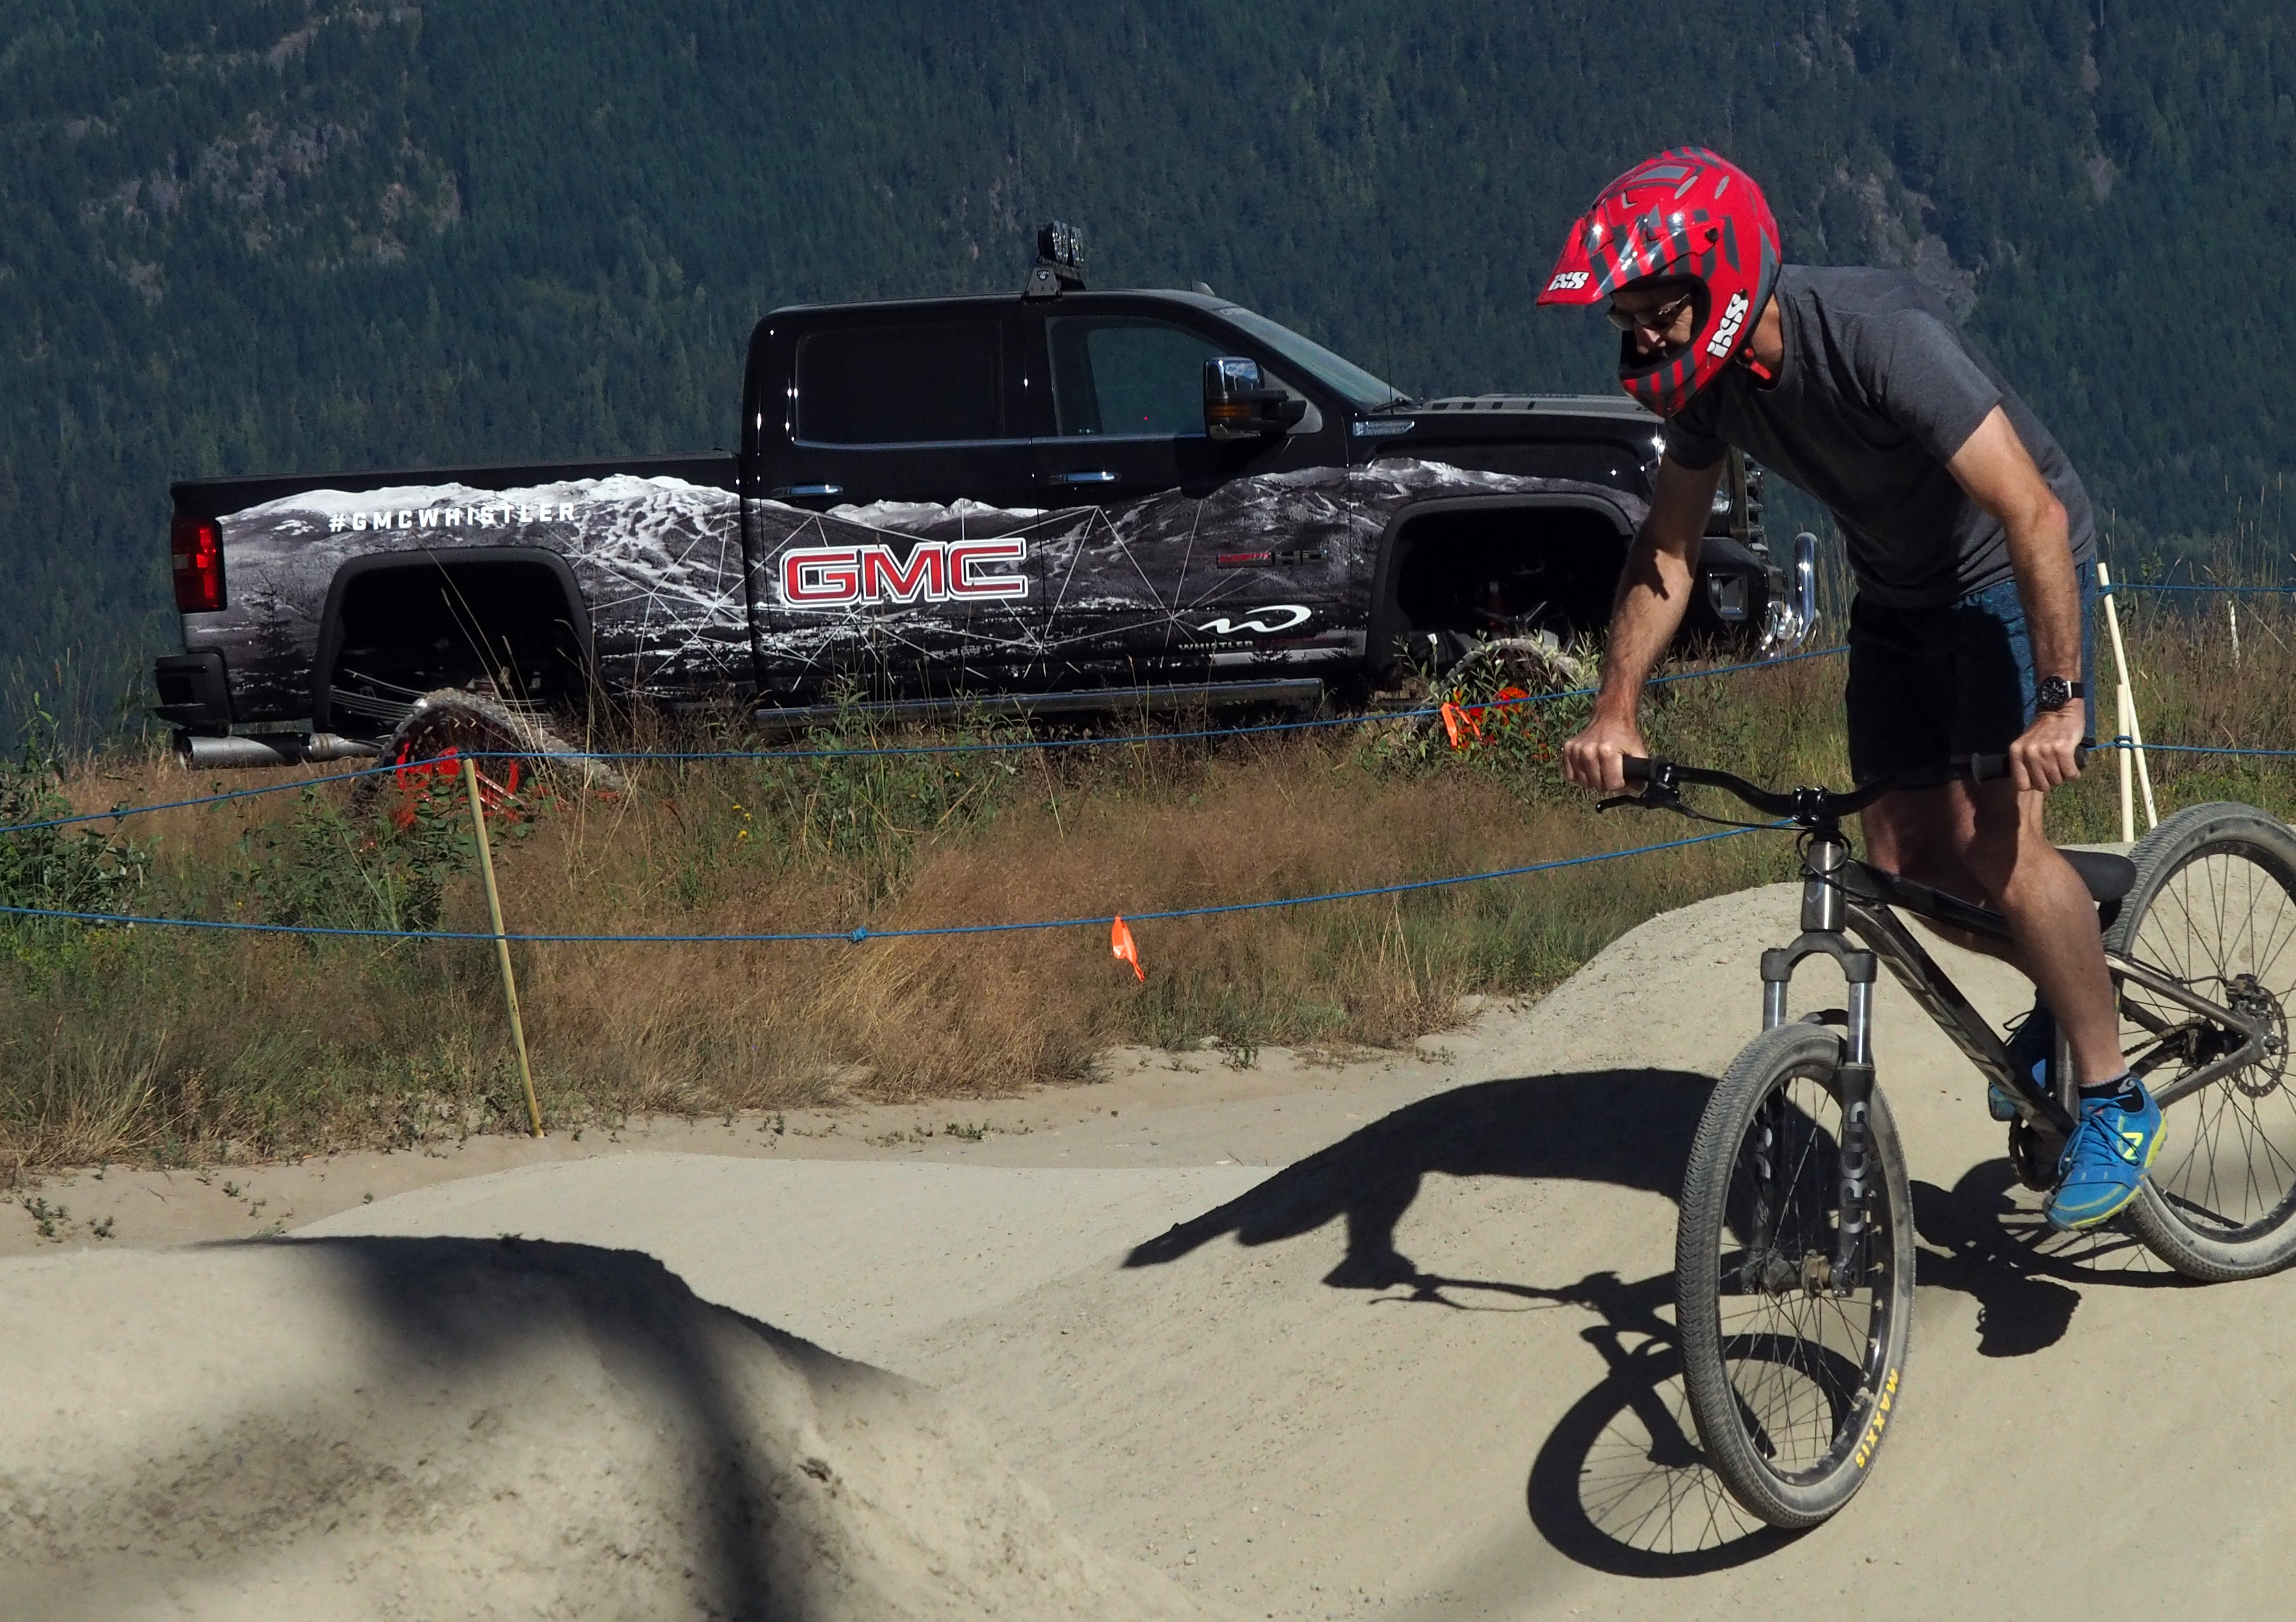 There were fun excursions at this event, like trying out the GMC Pump Bike Track. In the the GMC Sierra All Mountain edition, built by 360 Fabrication Inc., outfitted with Mattracks, big sound audio, ski /snowboard rack and fog lights, goes anywhere.